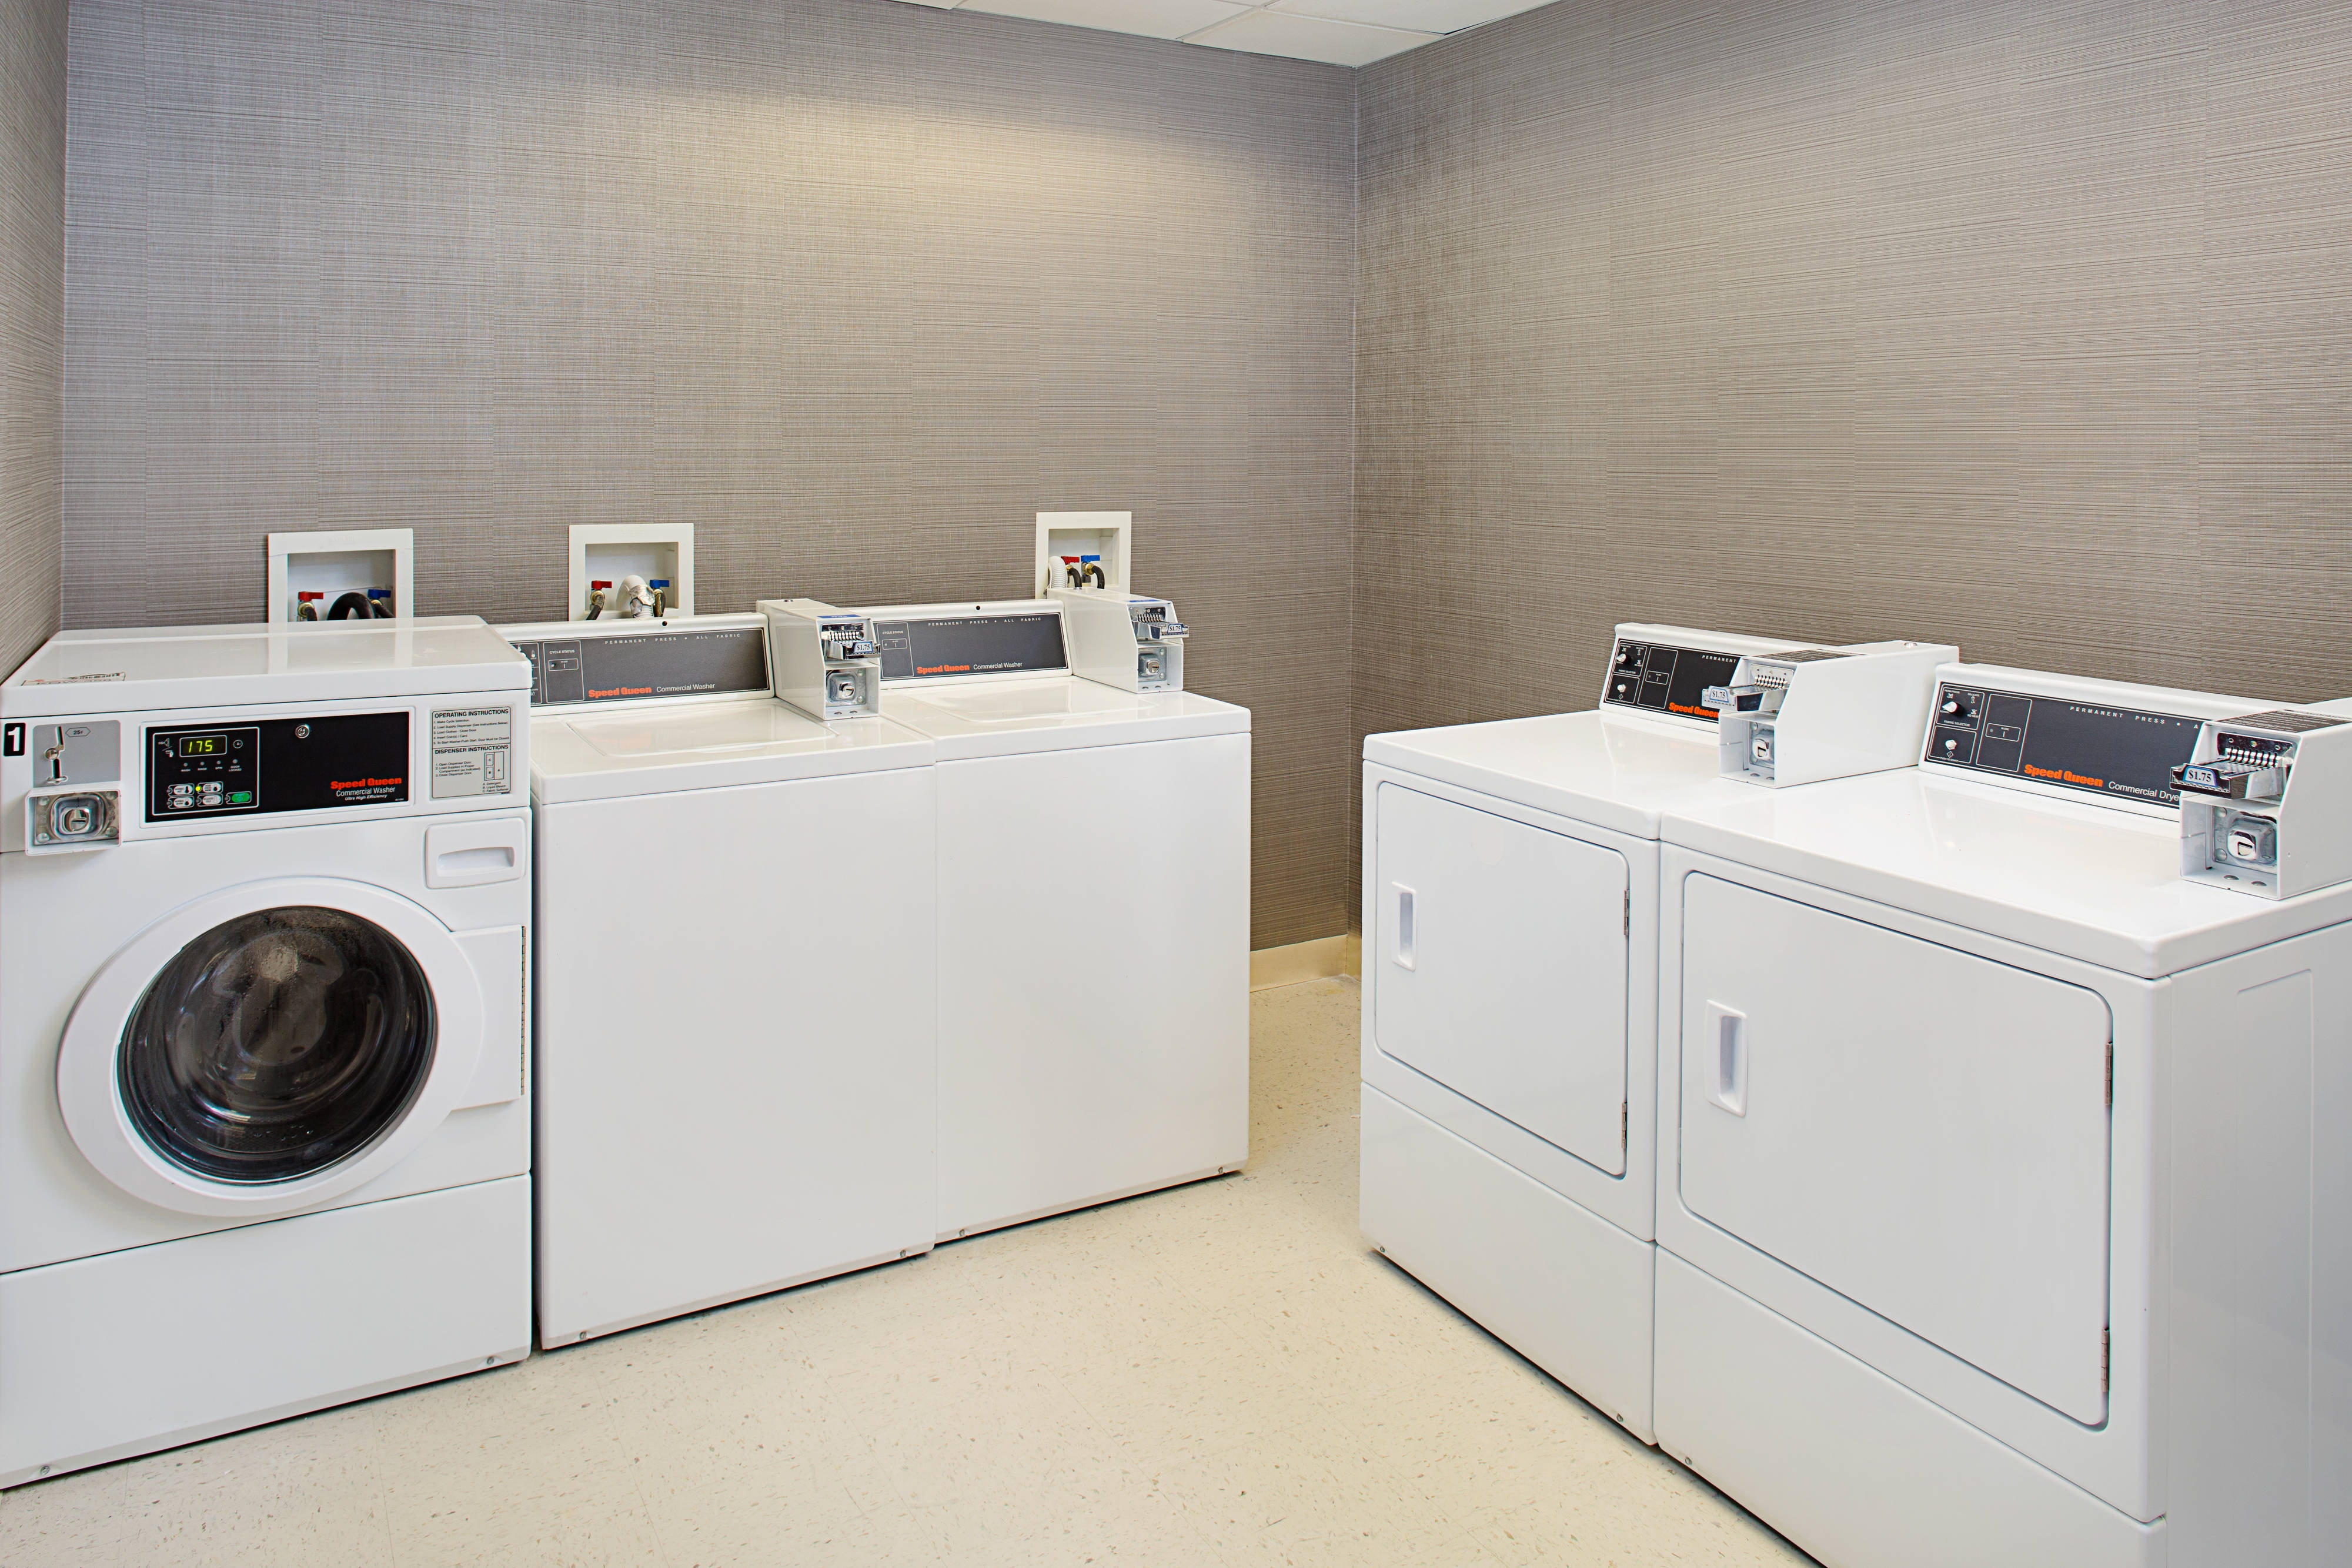 Coin Operated Laundry for guest use